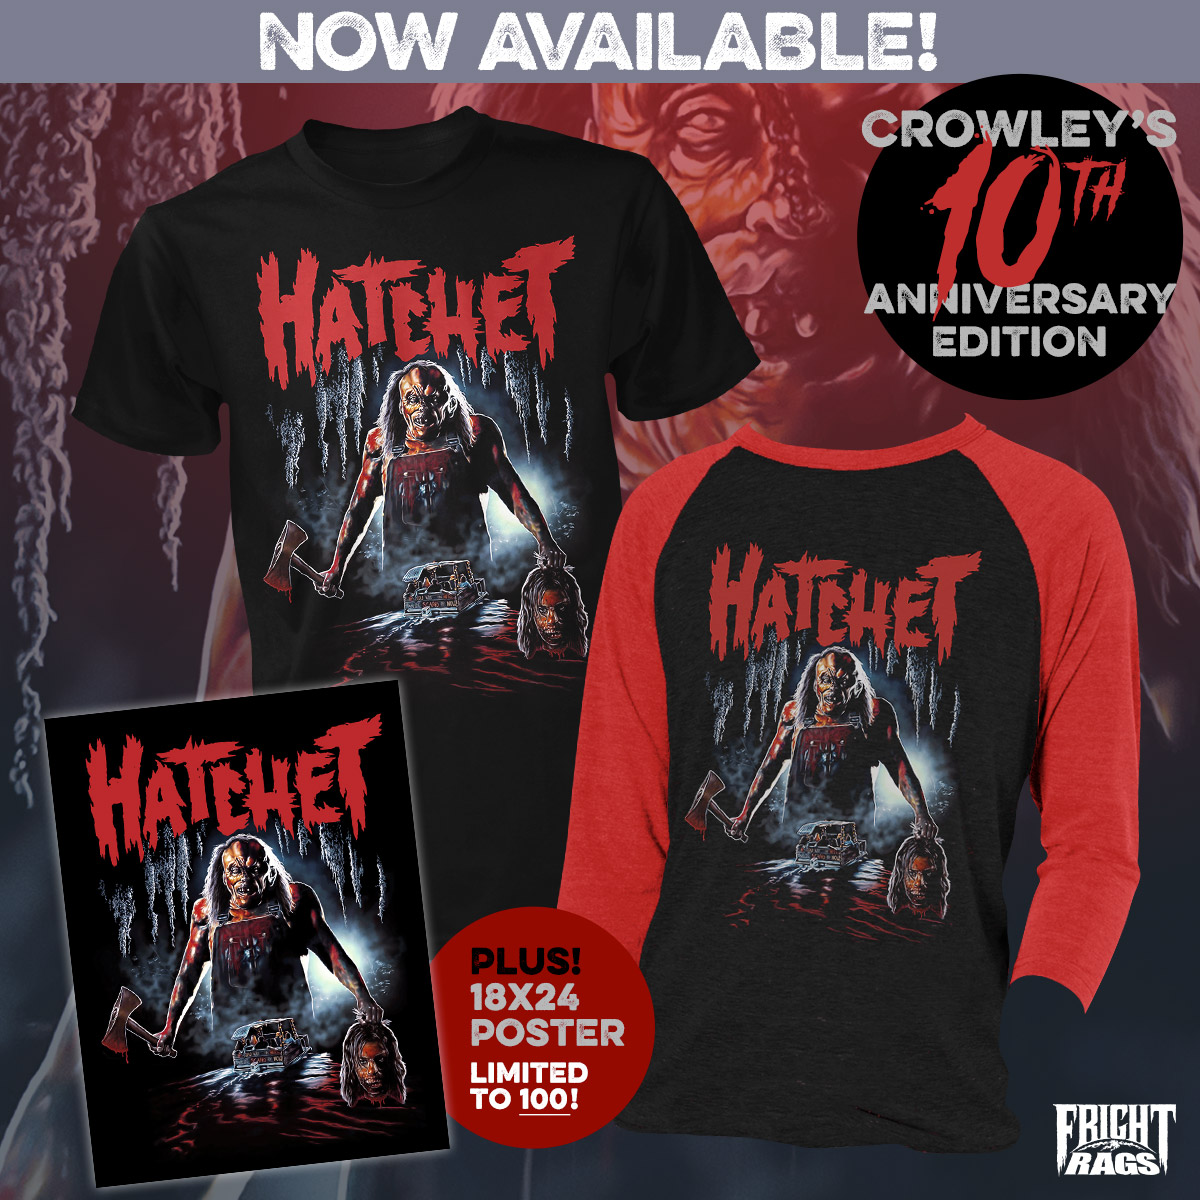 FRIGHT RAGS MERCH - Dawn of the Dead, Hatchet, & House of